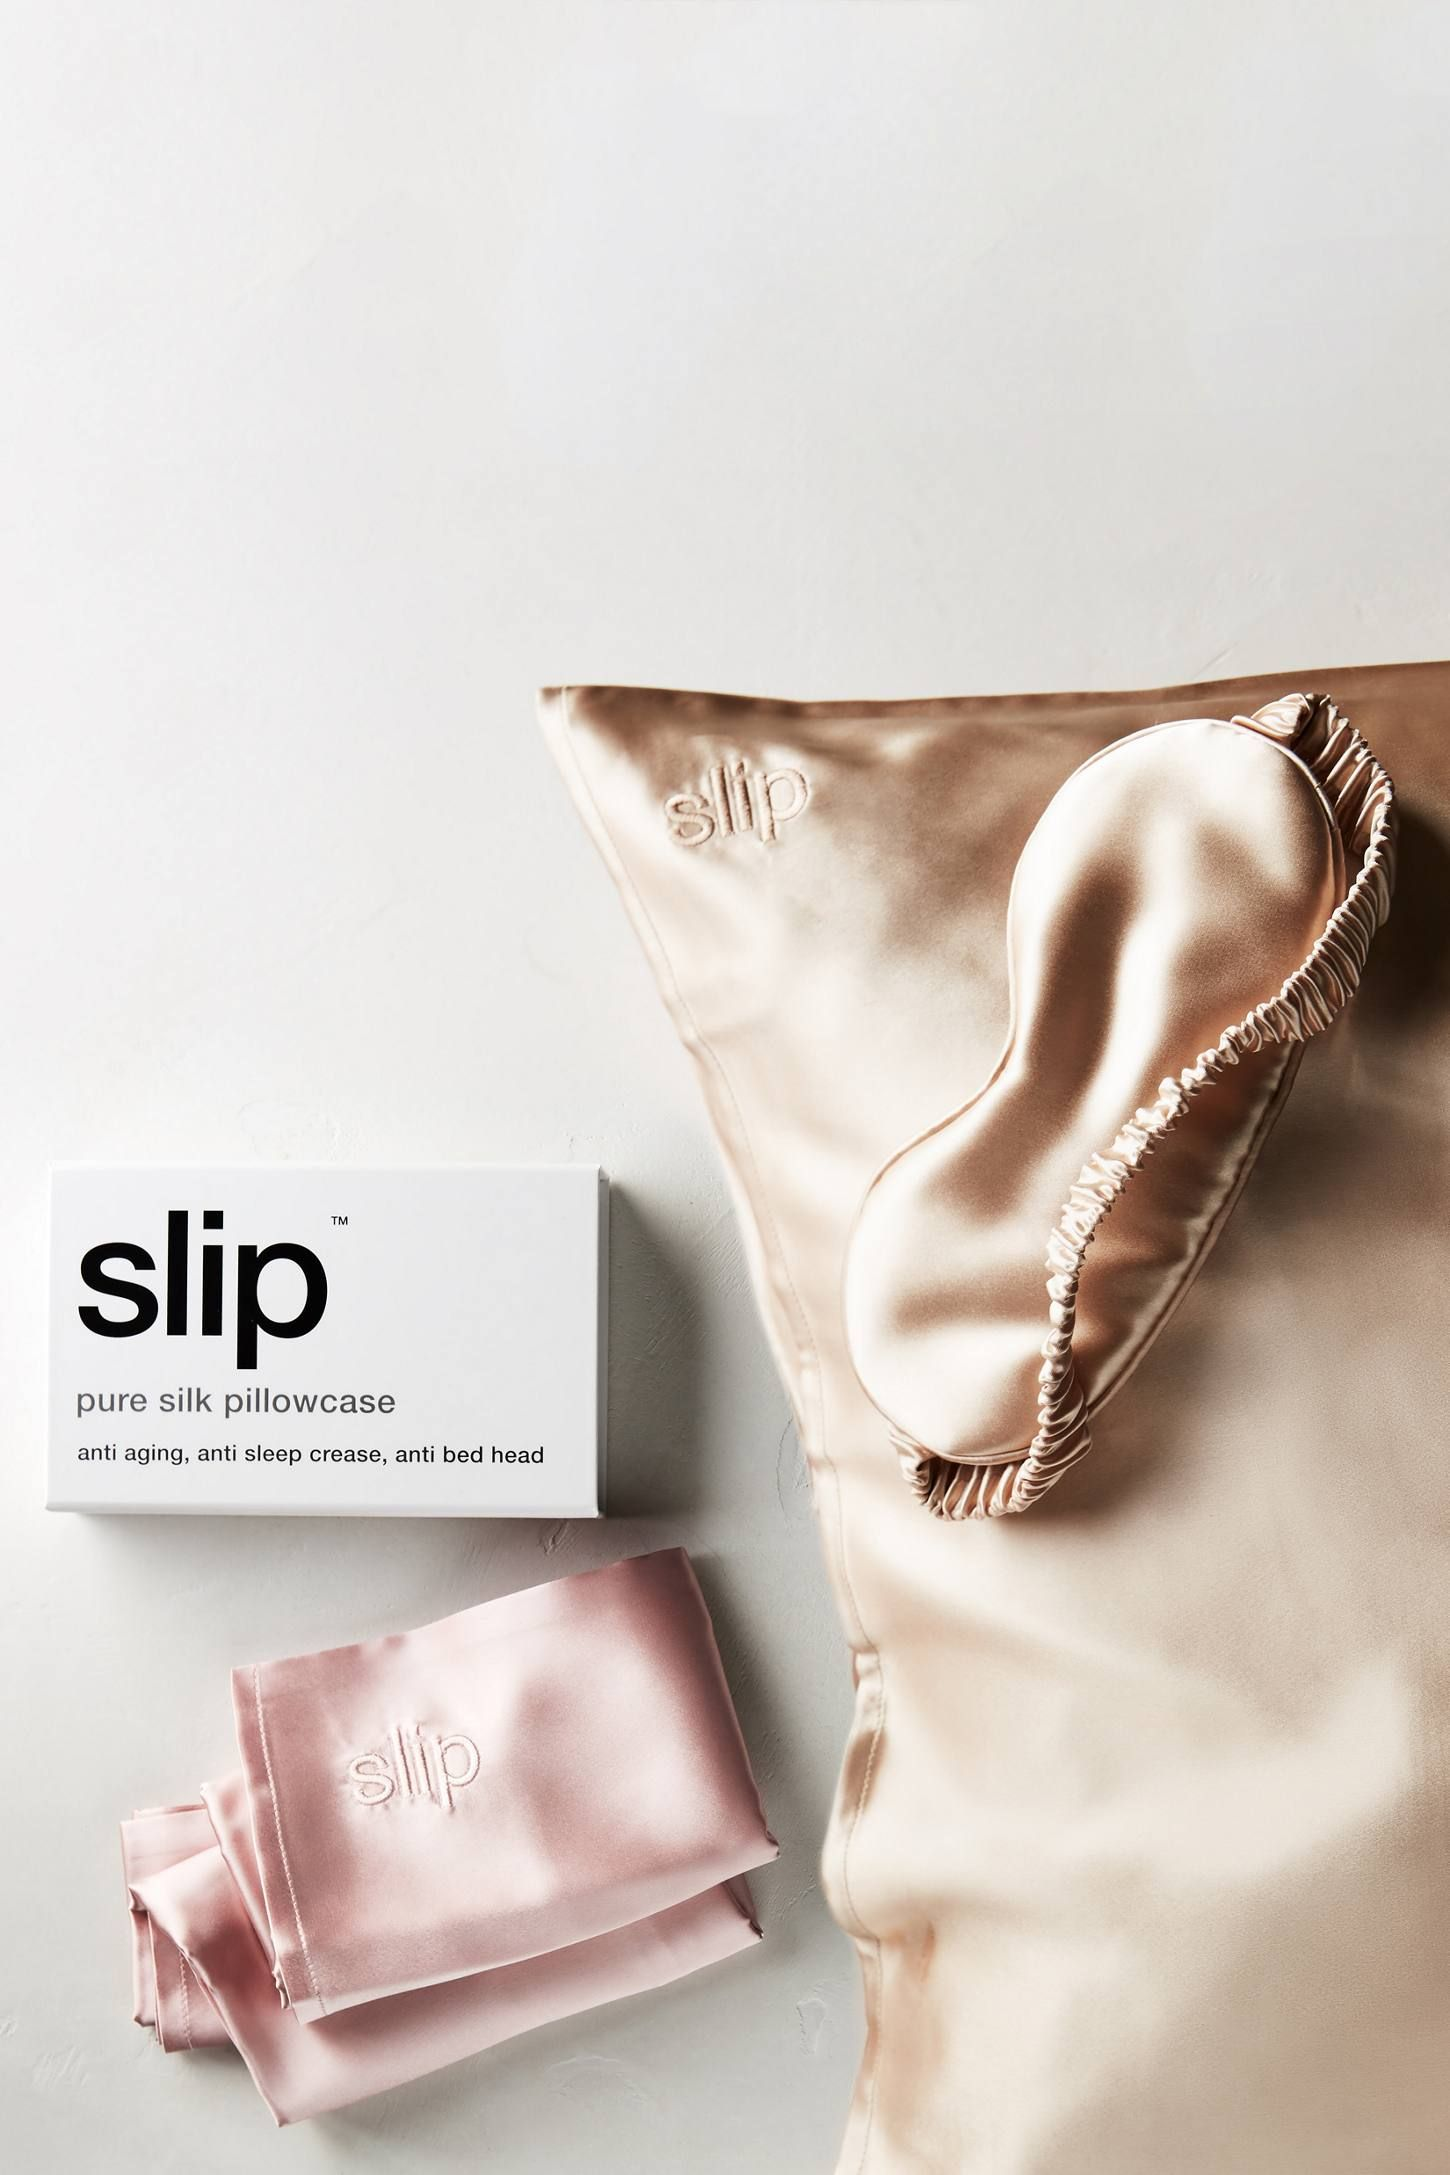 Slip Pillowcase Review Classy Slip Silk Sleep Mask  Anthropologie Masking And Silk Decorating Design